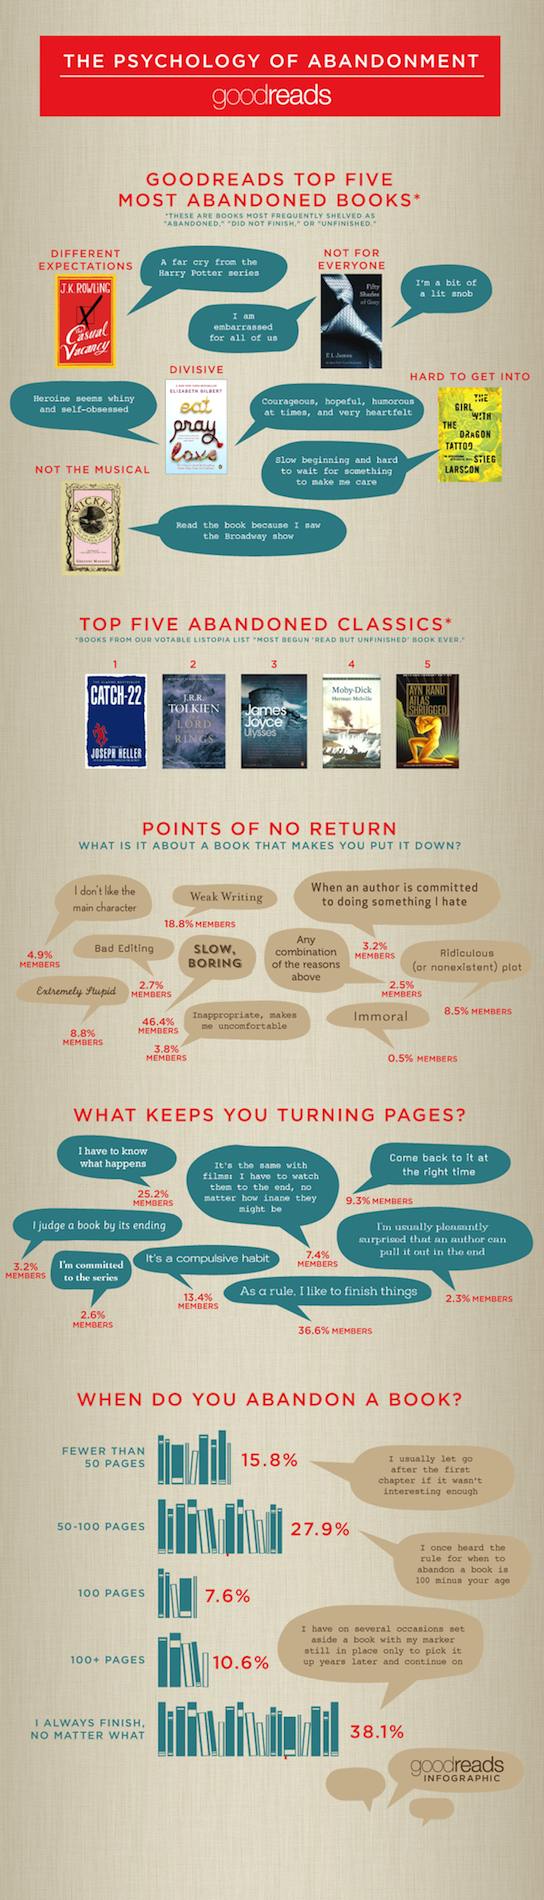 Goodreads-to-5-most-abandoned-books-infographic